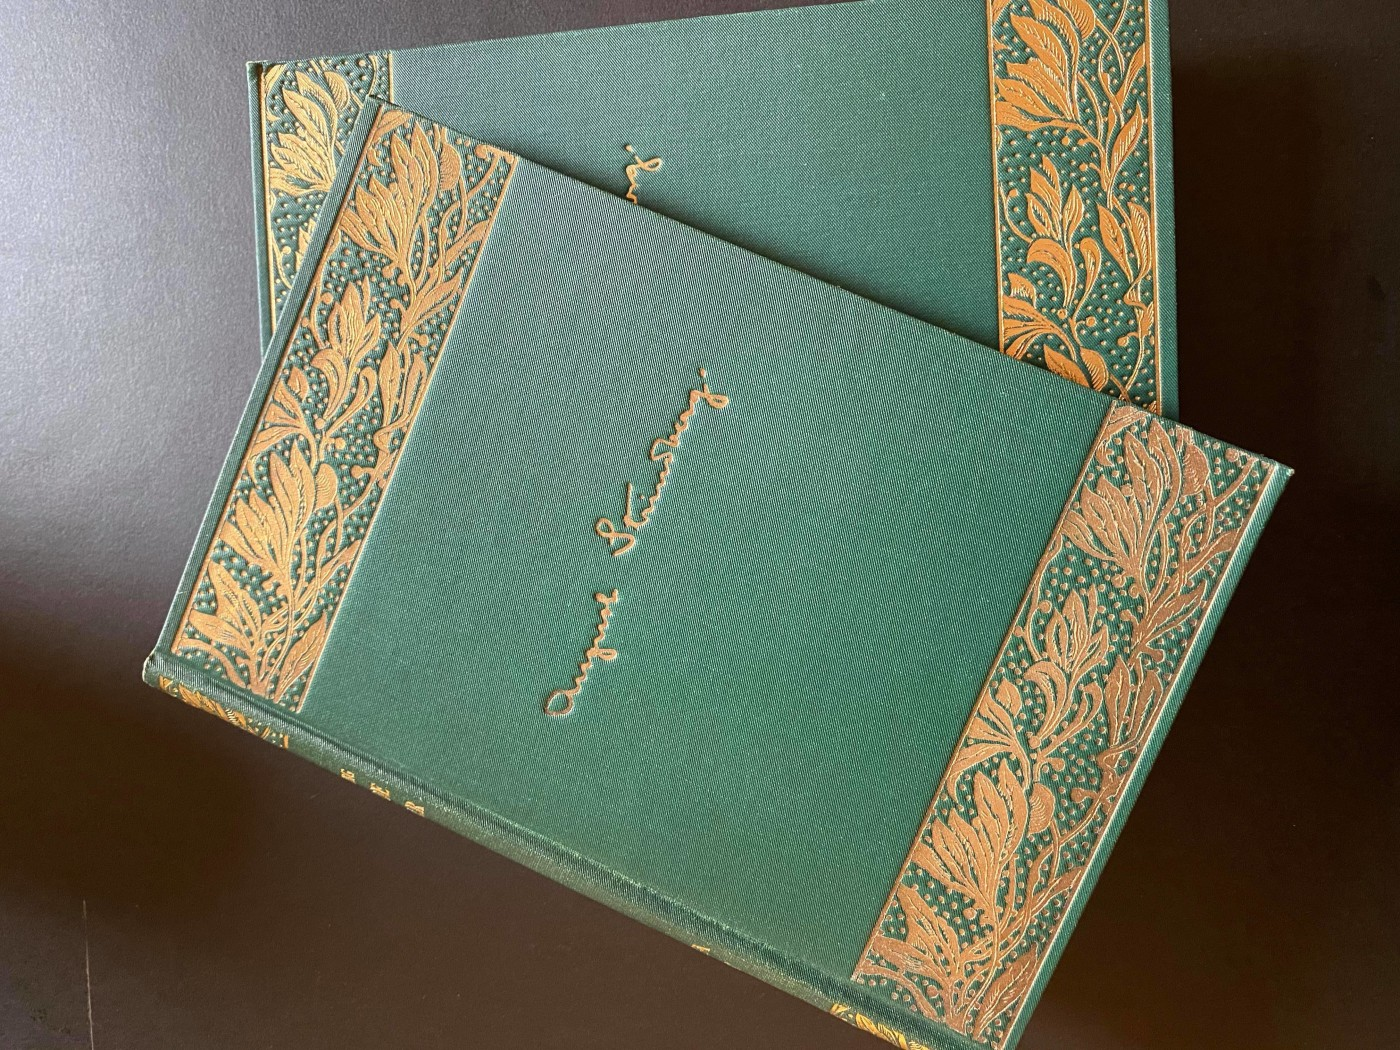 Green book with golden text